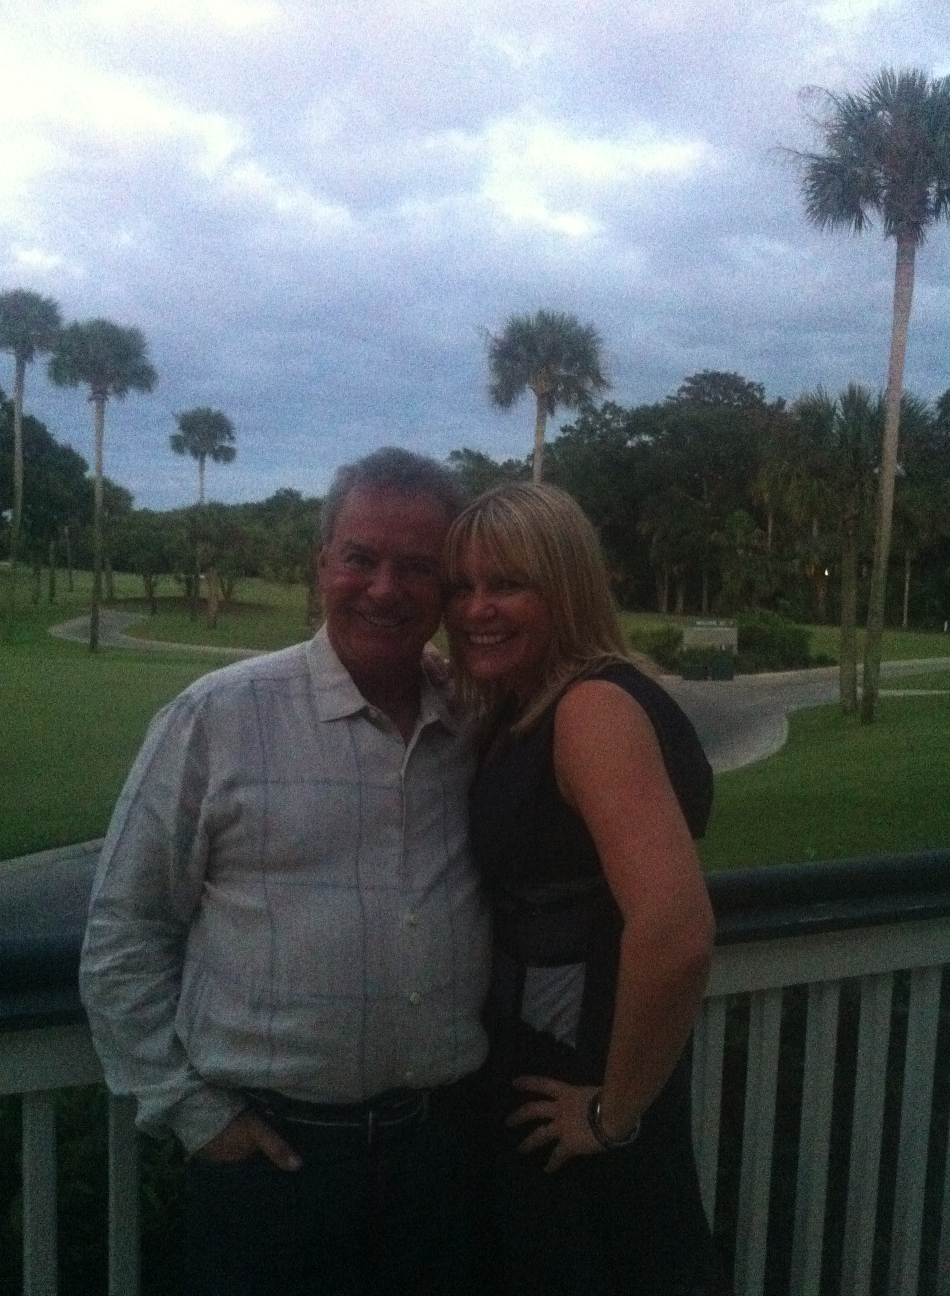 Val Wright, Leadership and Innovation Expert with Alan Weiss, the official Rockstar of Consulting, at the Million Dollar Consulting Mentor Summit, Kiawah Island, SC.